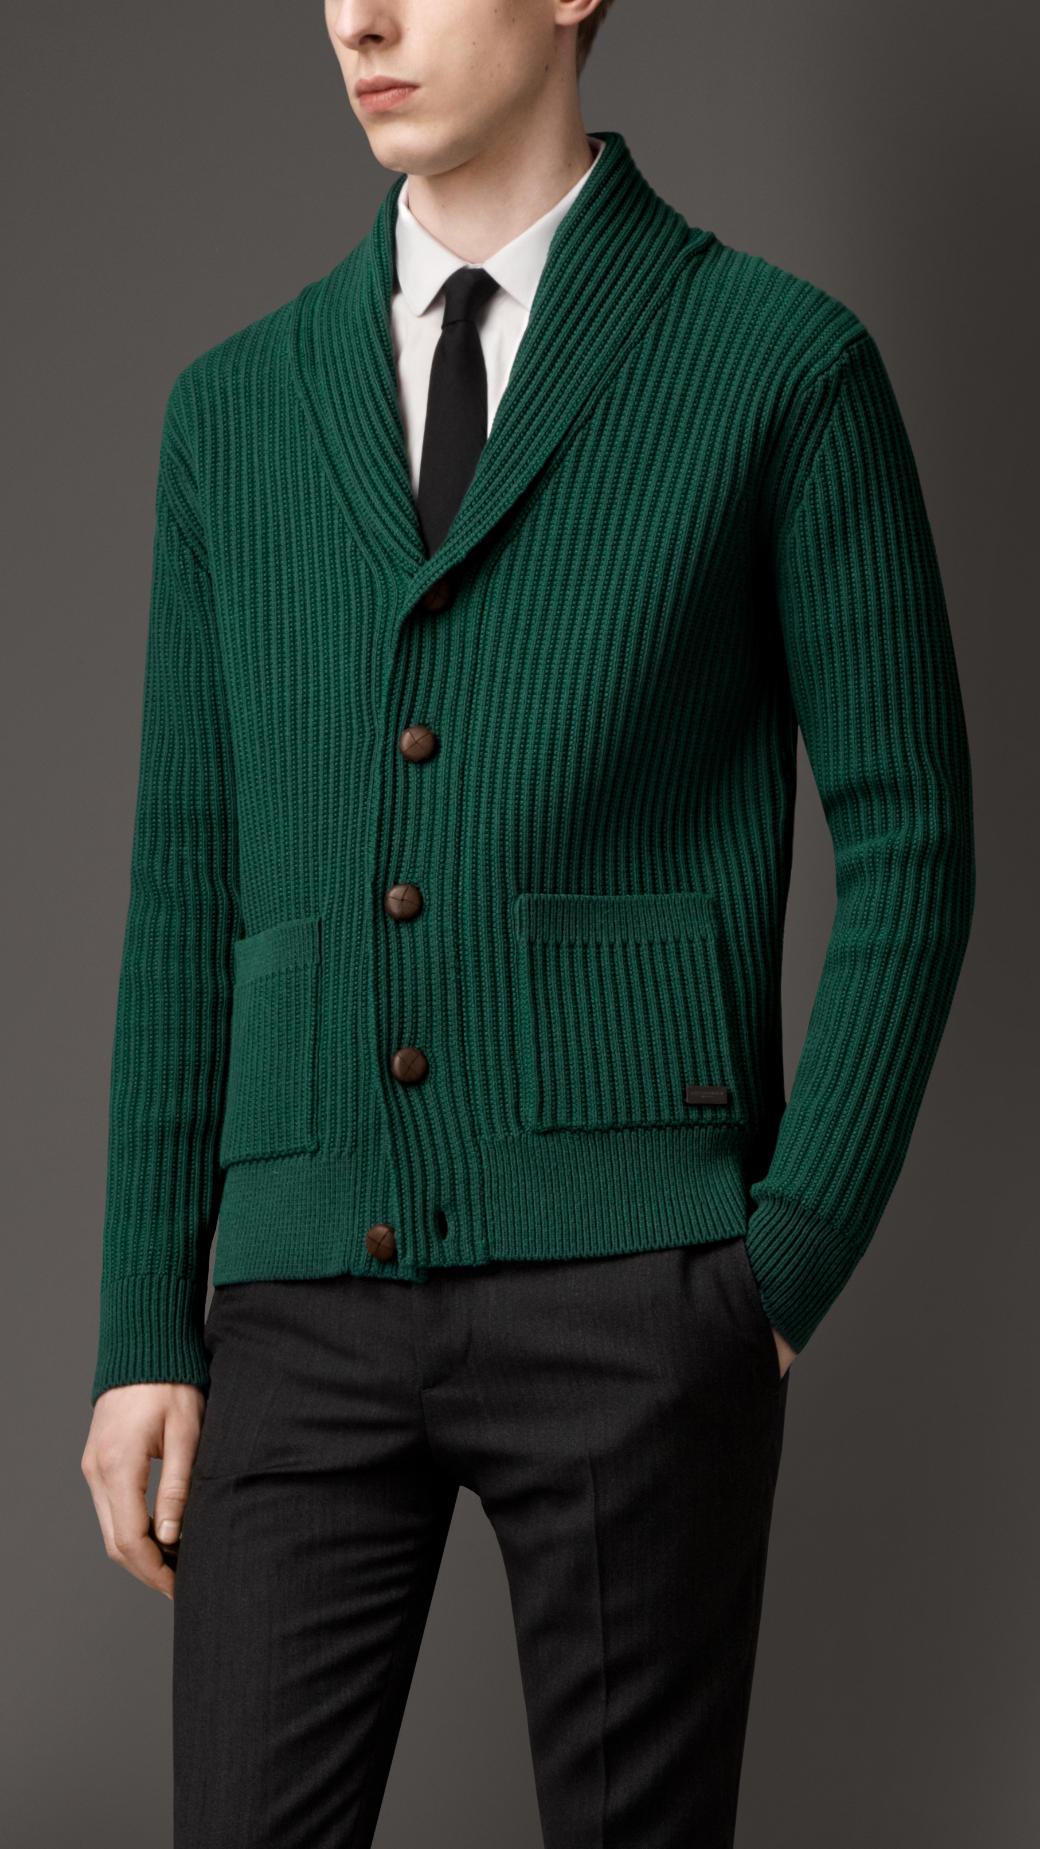 Burberry Knitted Cotton Blend Cardigan Jacket in Green for Men | Lyst